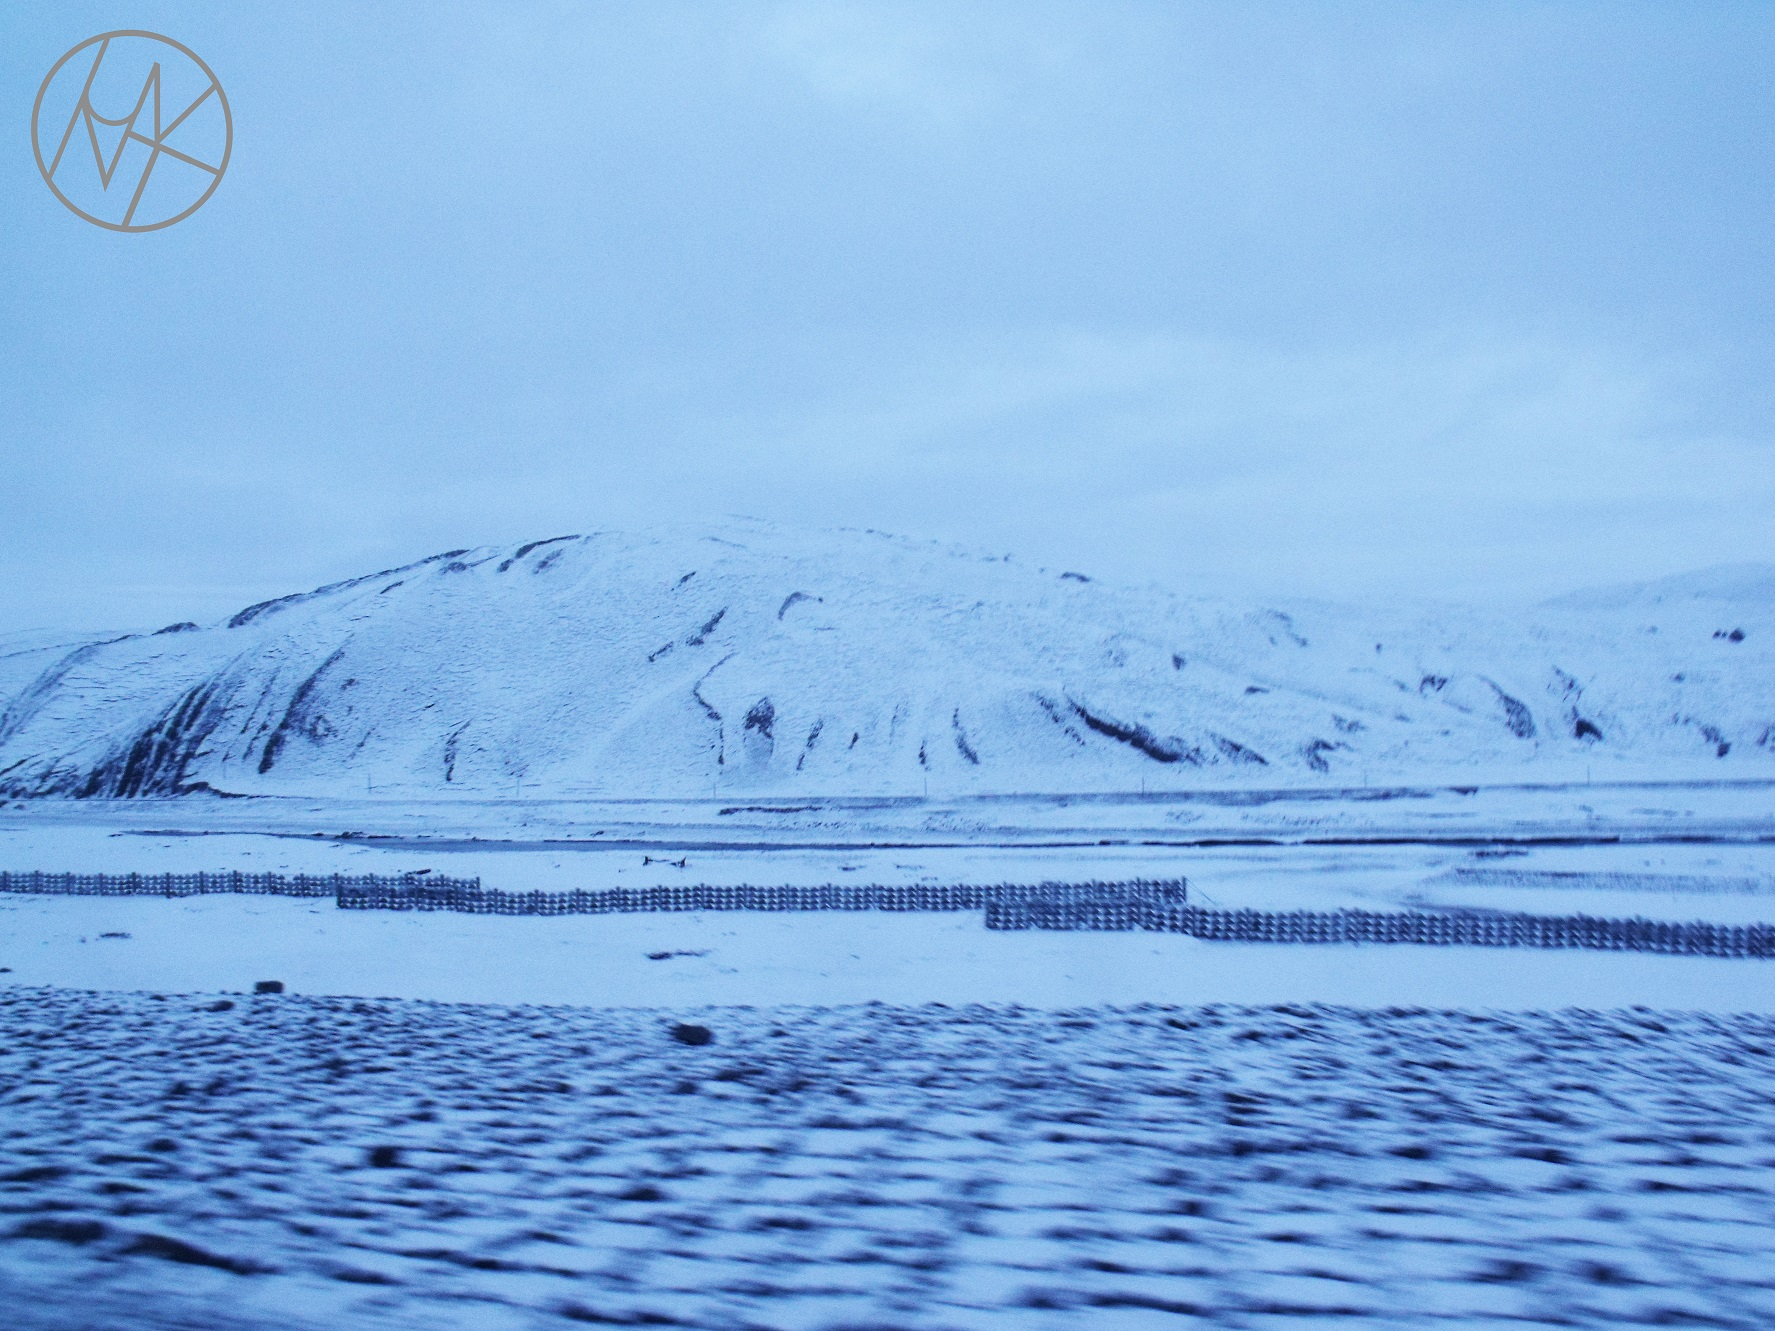 tibet_snow_land_of_snow_utazas_1.JPG